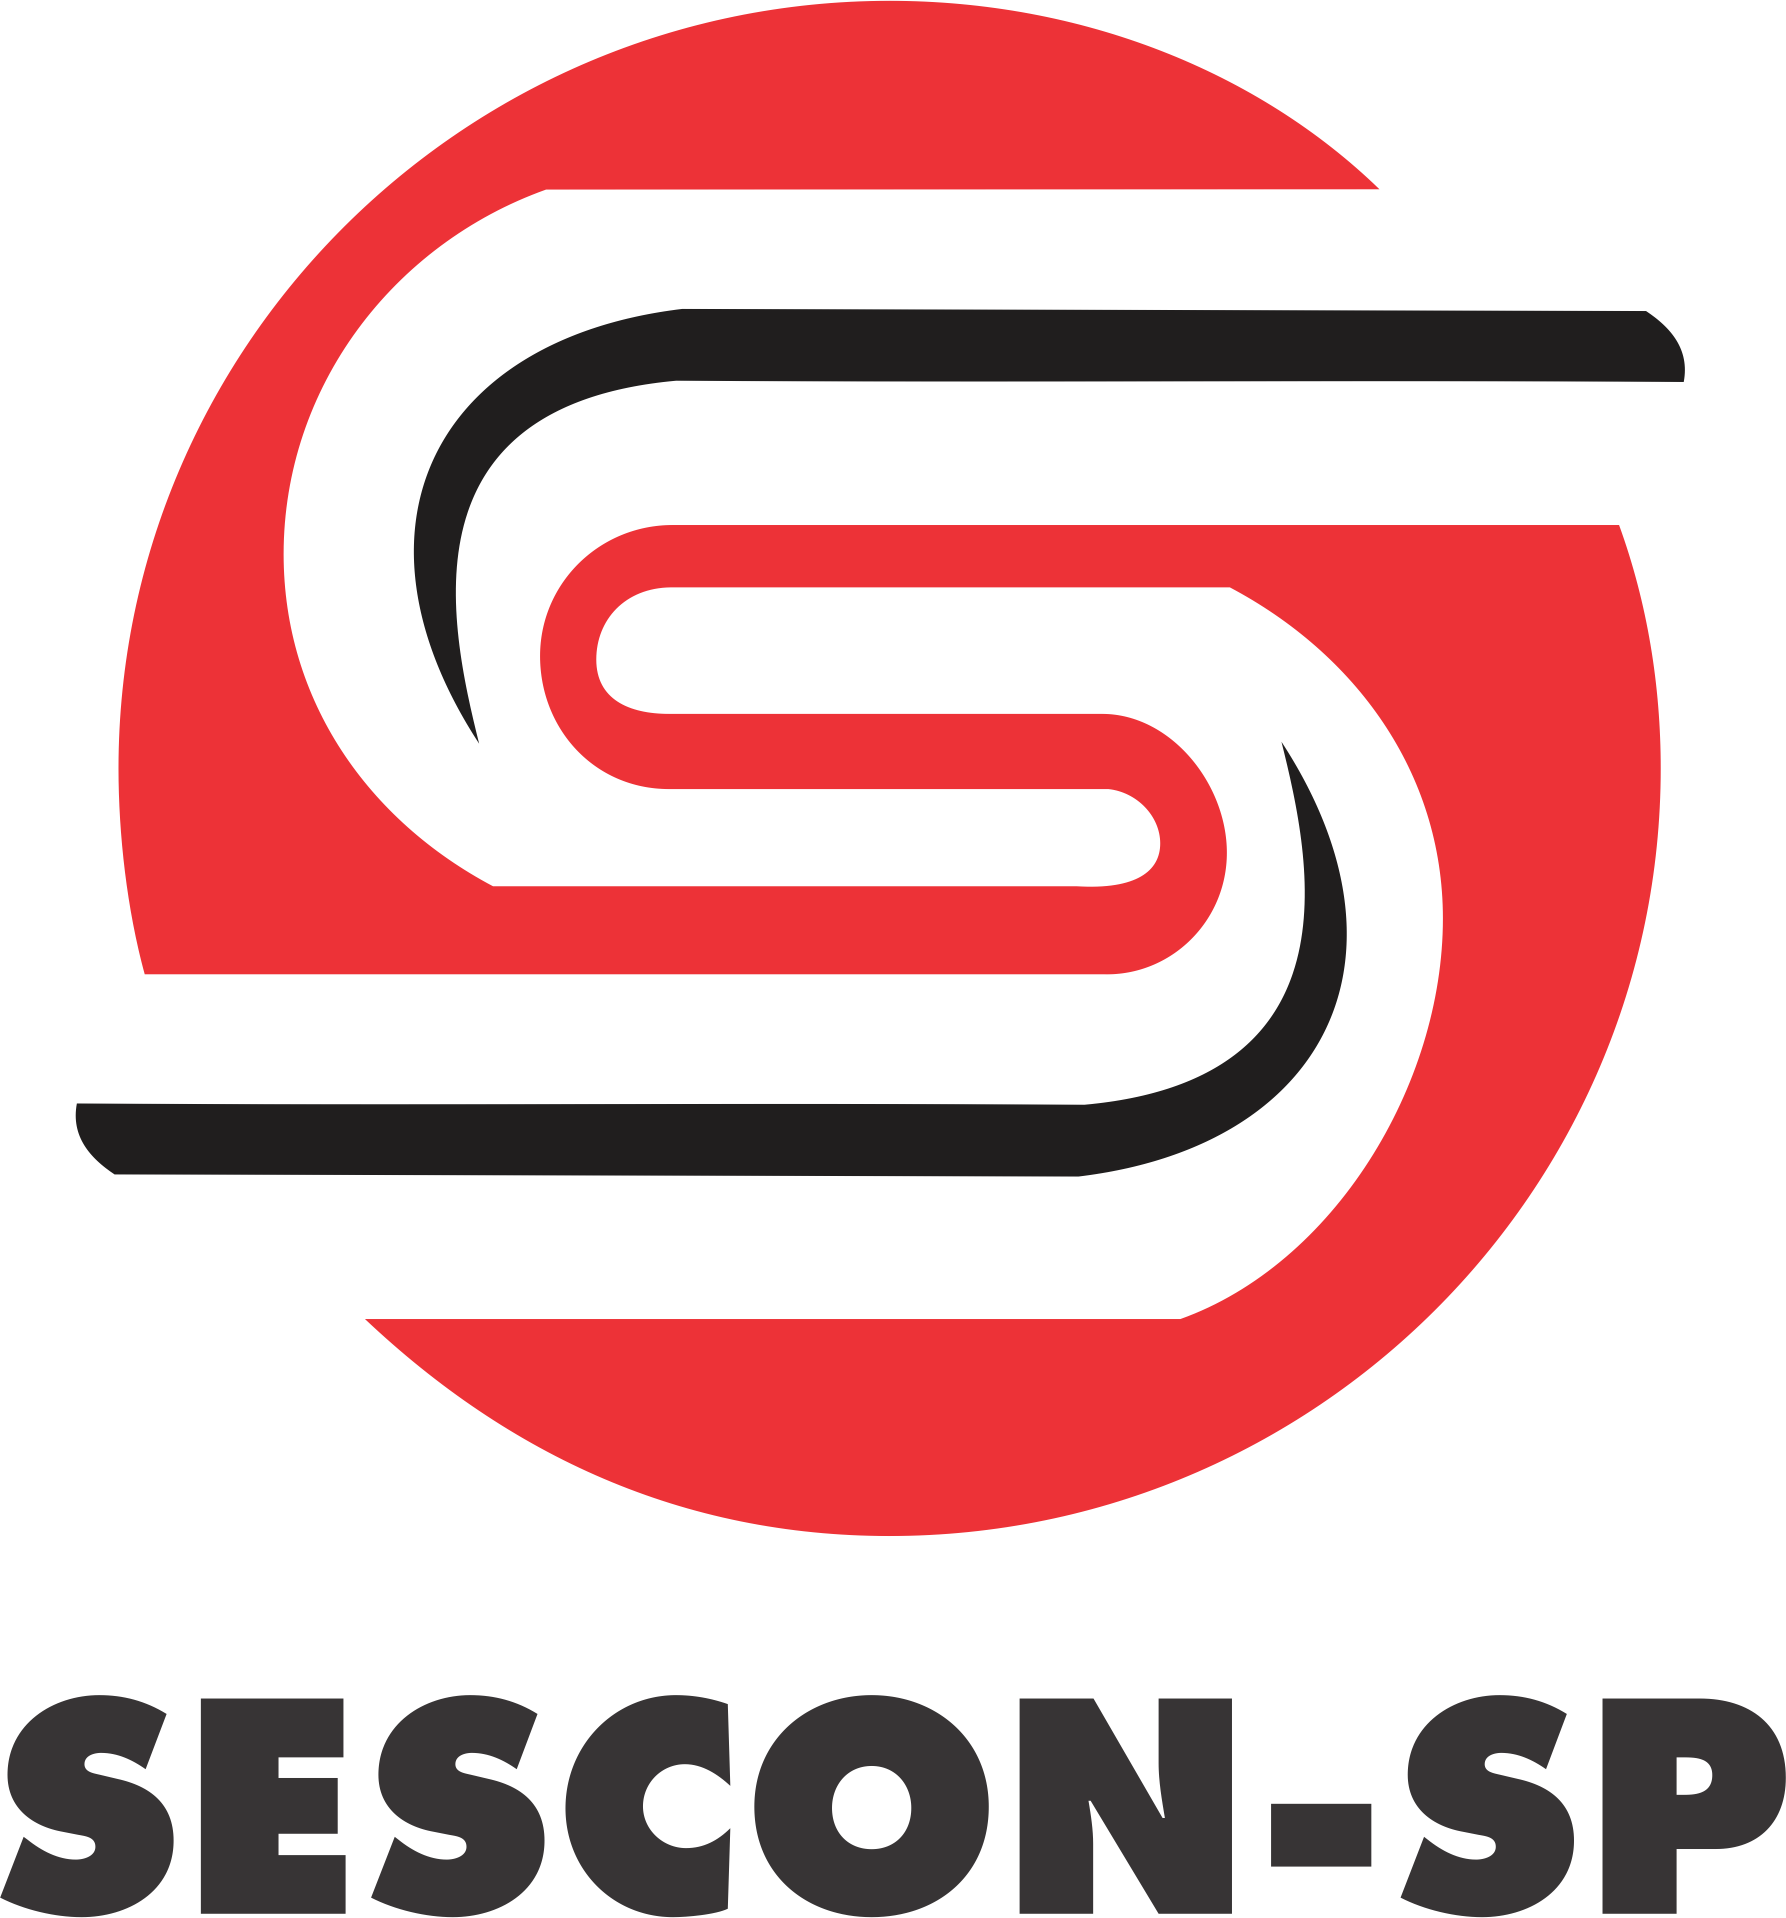 SESCON-SP.PNG